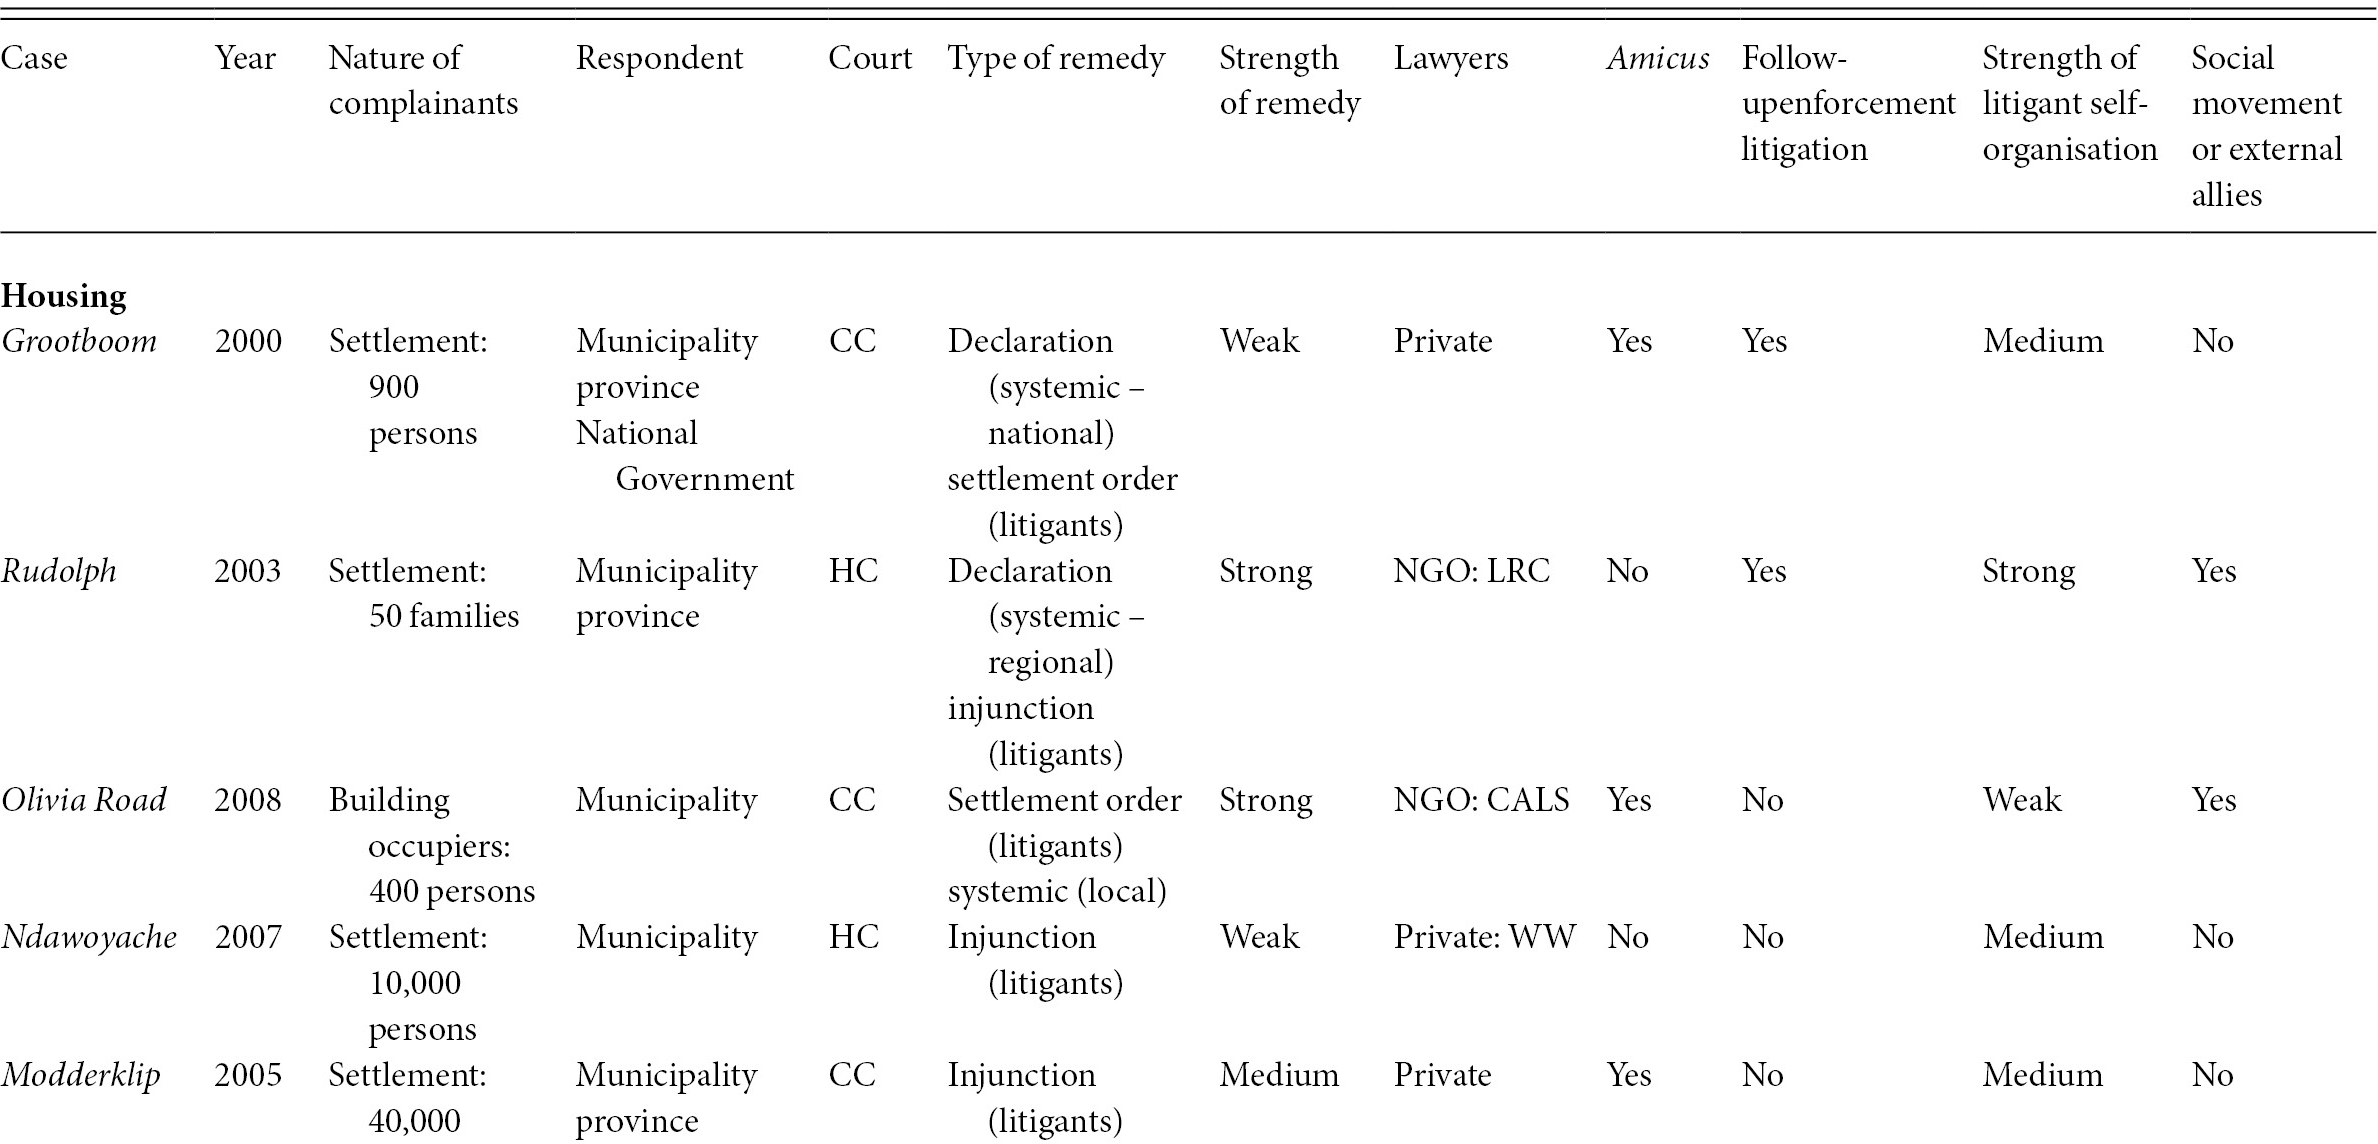 Case Studies (Part II) - Social Rights Judgments and the